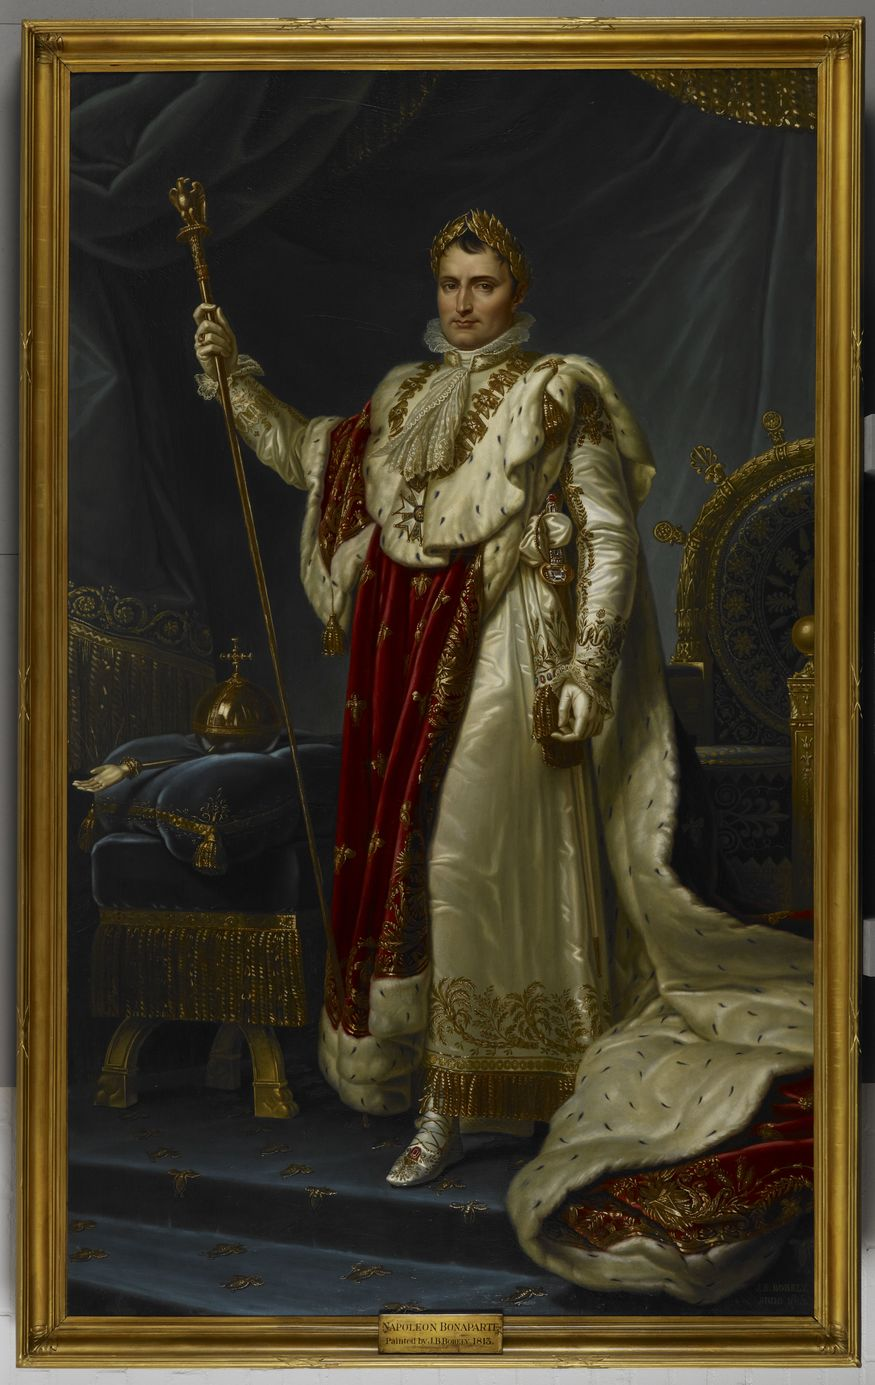 This enormous portrait of Napoleon was painted to inspire loyalty and intimidate critics at a time when the emperor's power was declining and France was besieged on all sides. The painting was originally hung in the Council Hall of Montpellier but less than a year later, with Napoleon defeated, the painting was removed and returned to the artist with the bill unpaid. Napoleon, J. B Borely, 1813